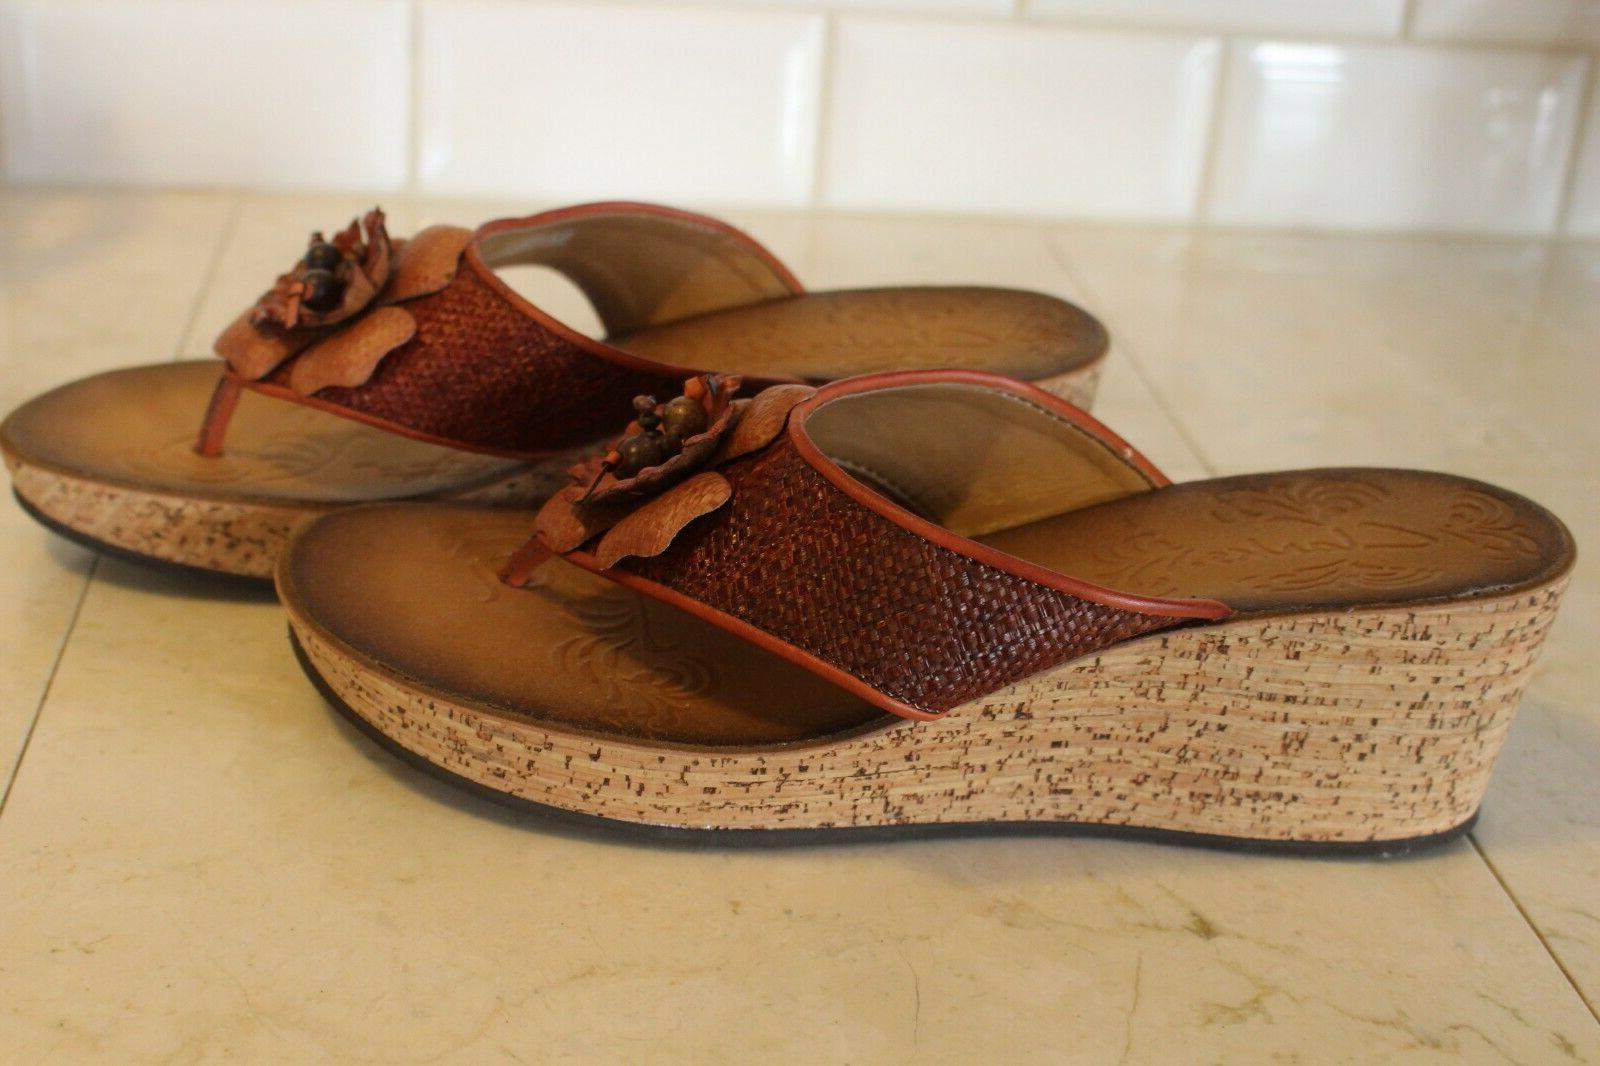 NEW CLARKS WEDGE SANDALS SIZE